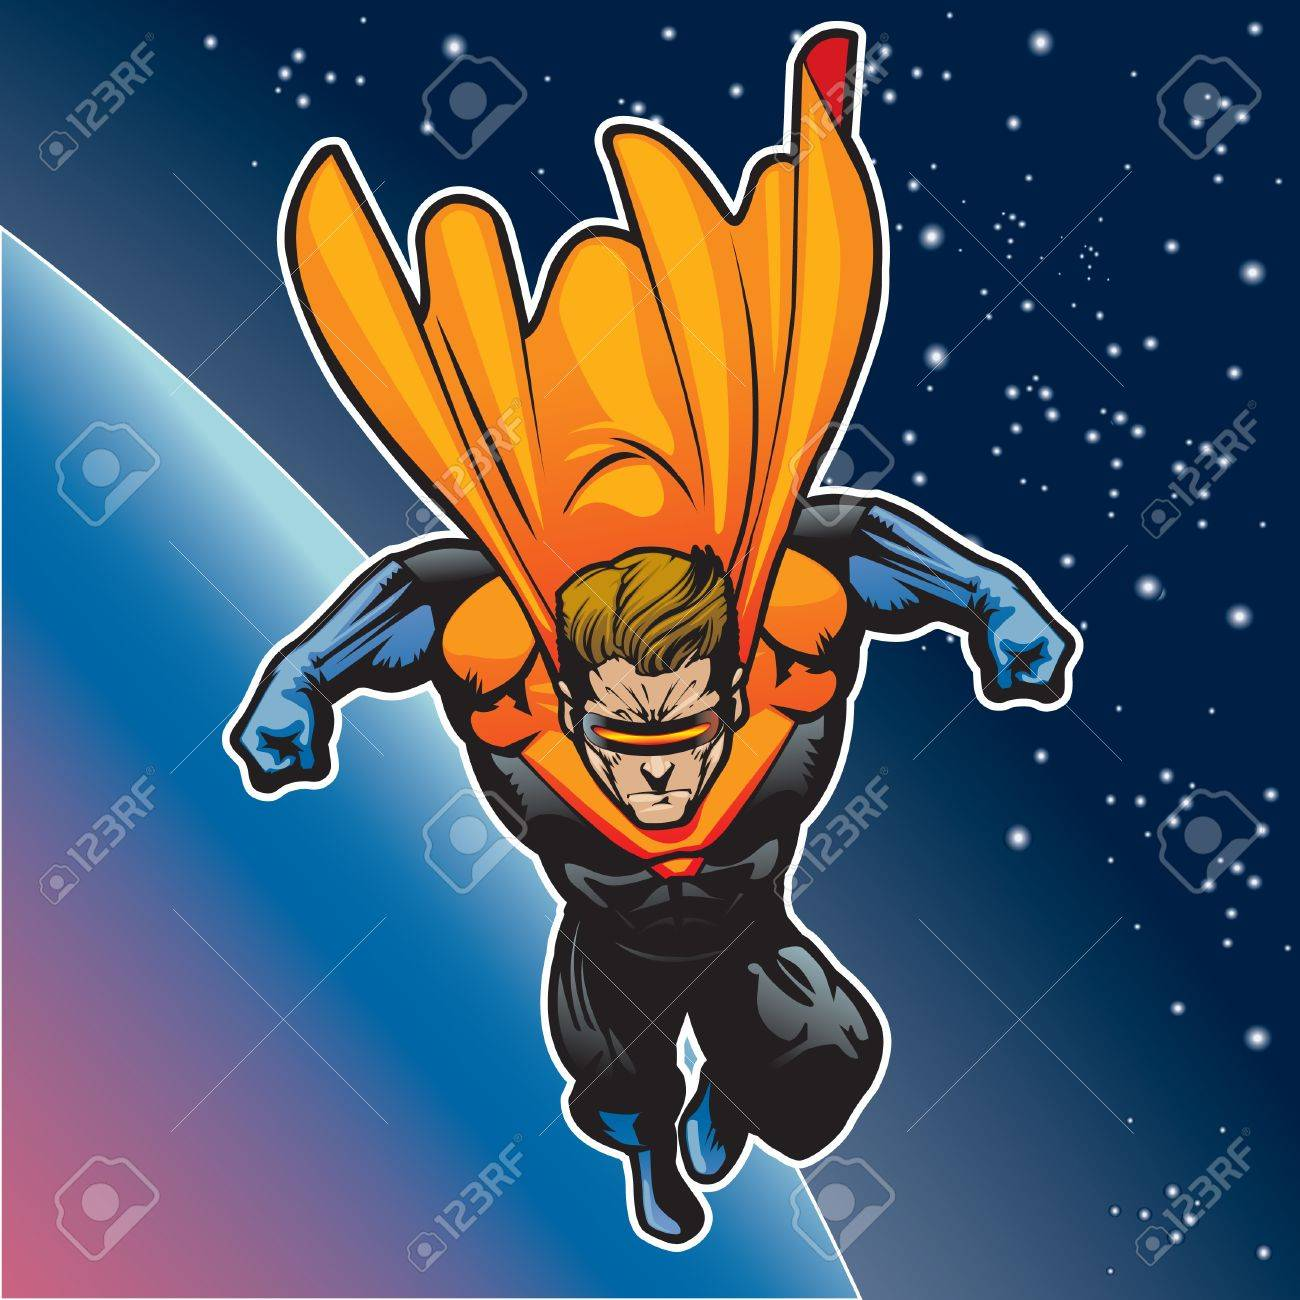 Super hero with cape flying above a planet Stock Vector - 14312694